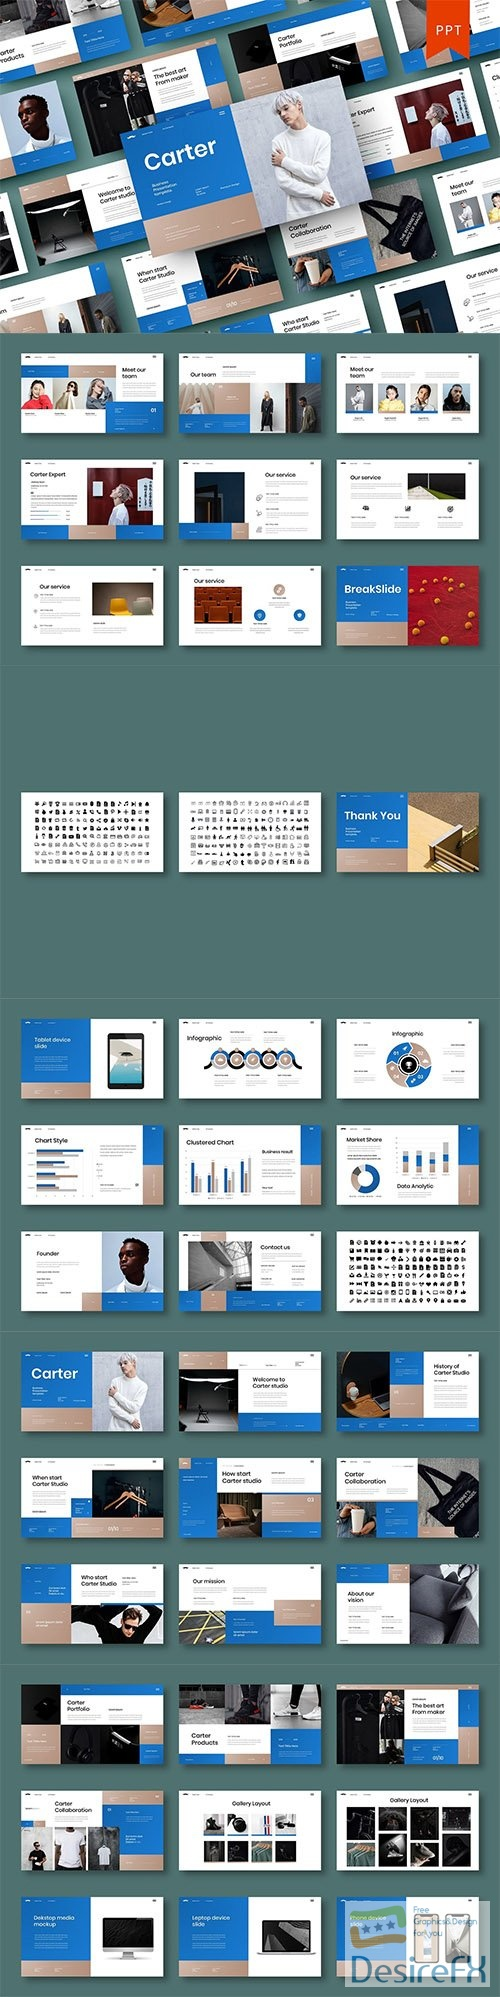 Carter – Business PowerPoint Template